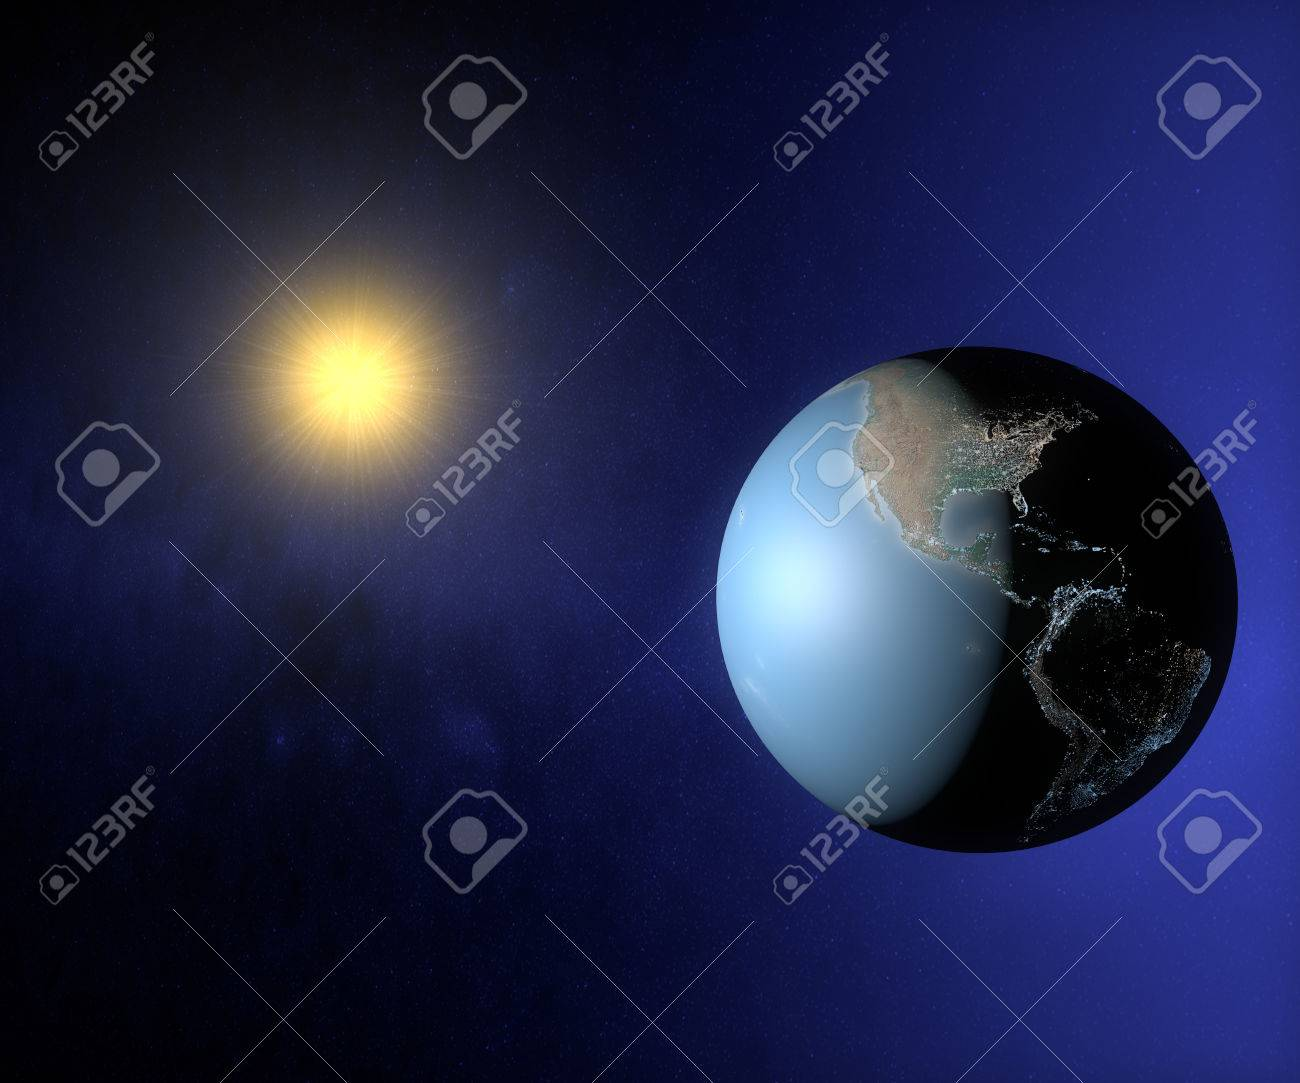 World Globe Map In The Space With Sun And City Lights, America ... on globe map of netherlands, globe earth map, globe map of malaysia, map from usa, globe map of egypt, globe map of new zealand, globe canada, globe map of holland, earth map usa, globe map of greece, new 7 wonders of usa, globe map of yemen, globe world map, globe map of guyana, globe map of israel, globe map of france, globe map of haiti,